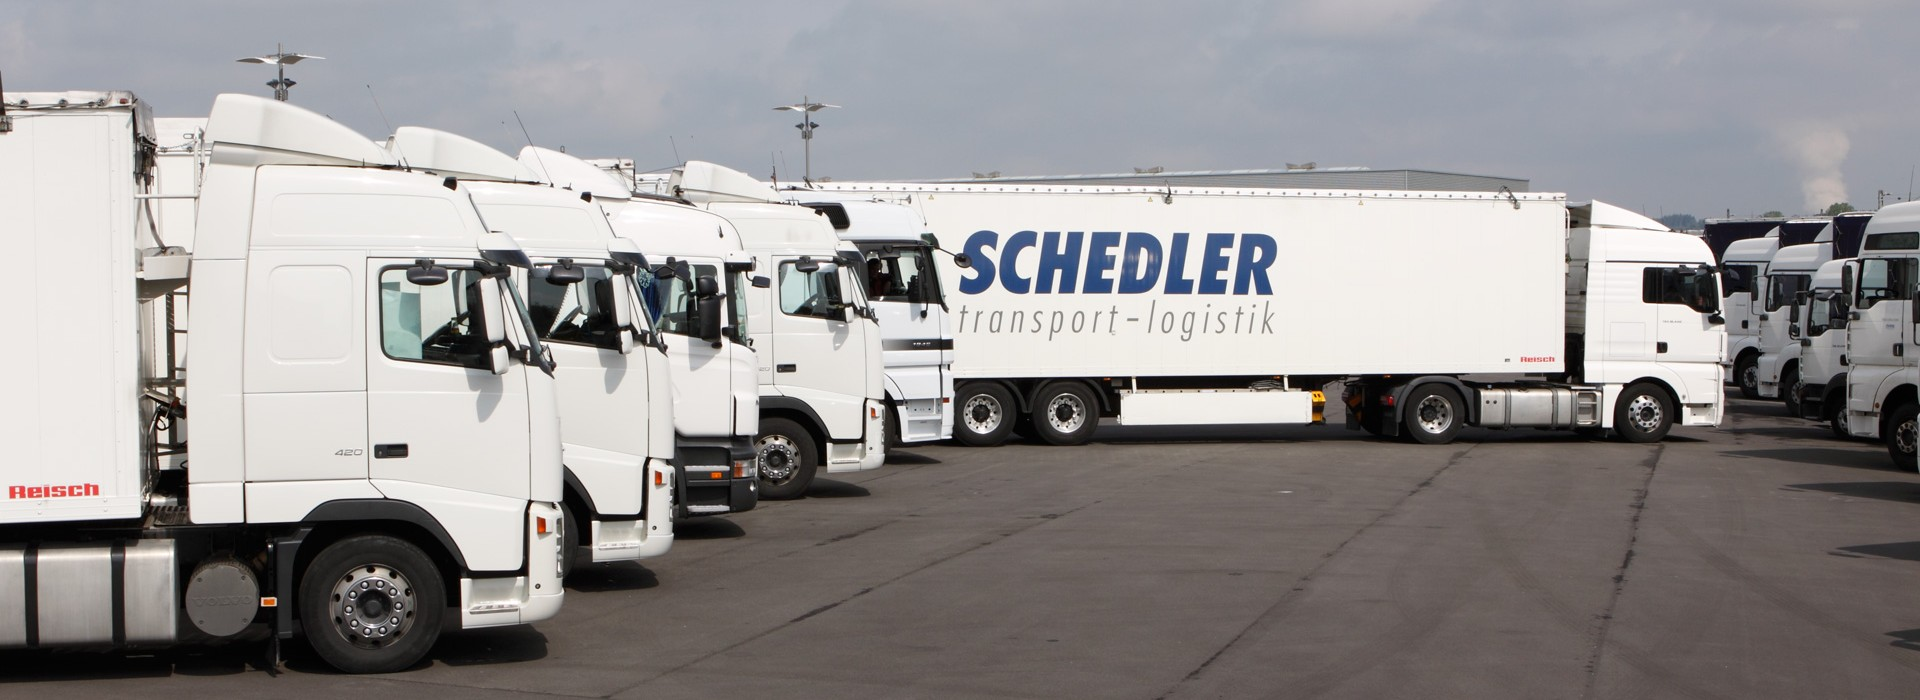 schedler-transport-logistik-header